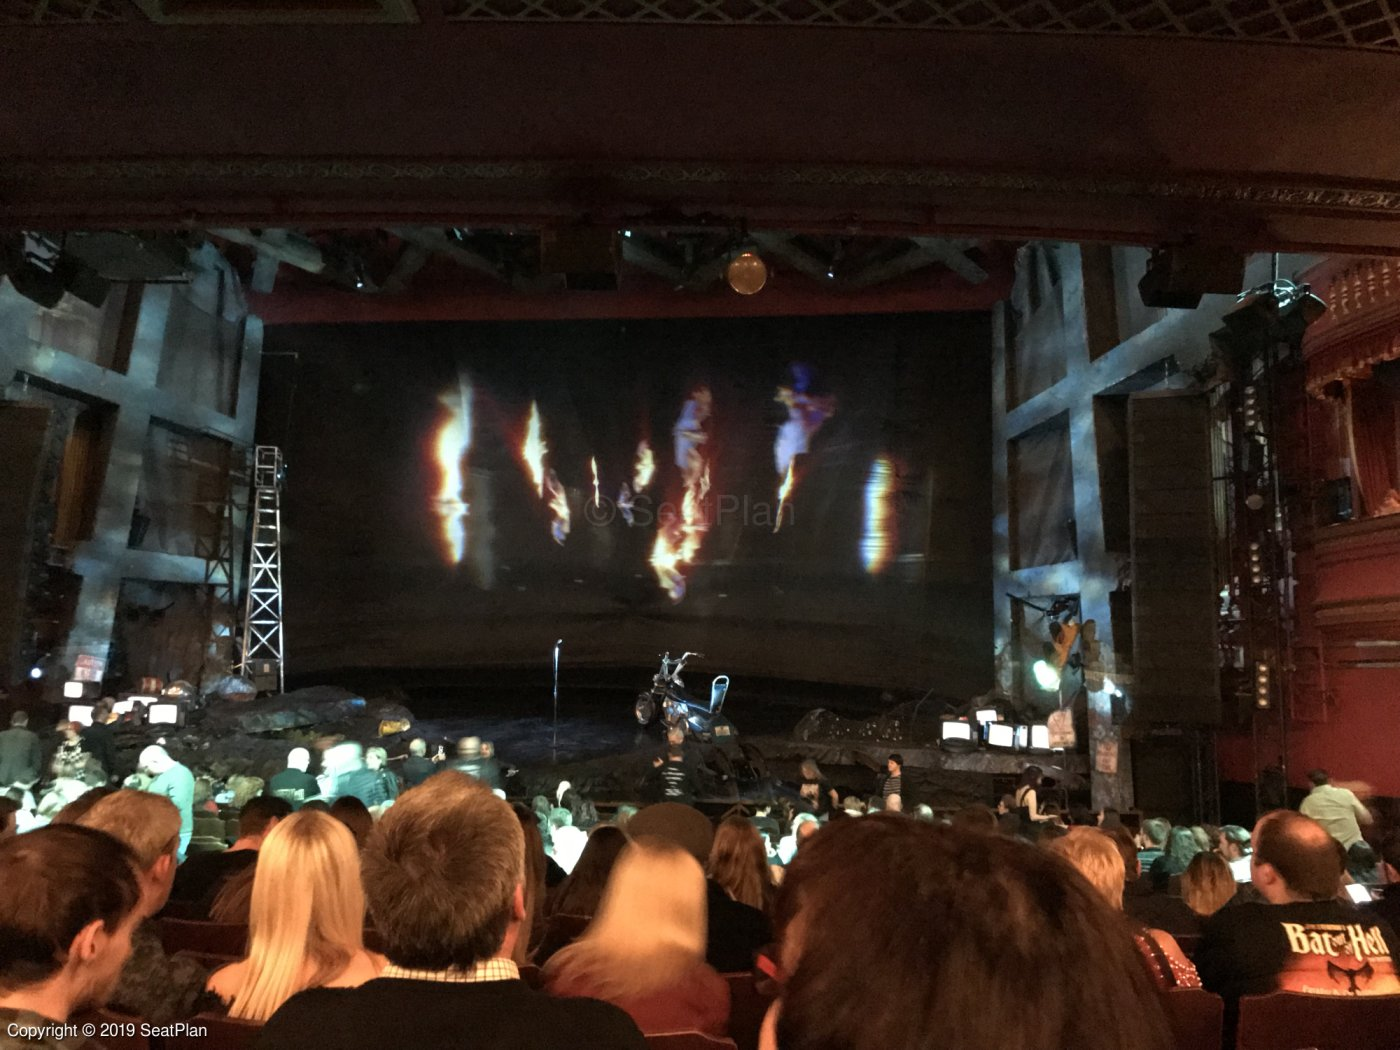 Dominion Theatre London Seating Plan & Reviews | SeatPlan